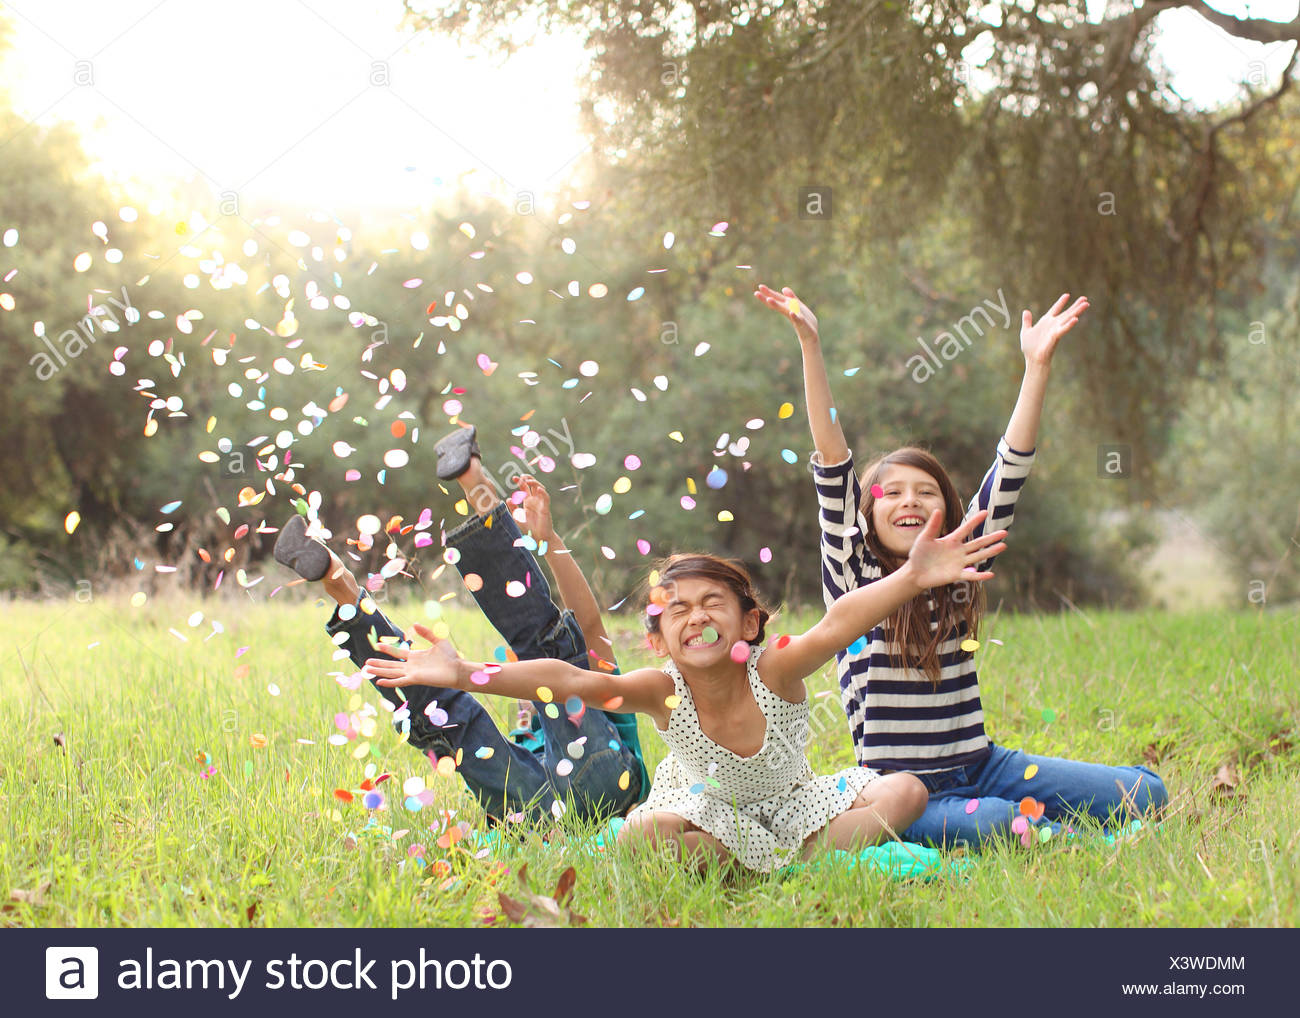 Three children sitting in park throwing confetti in air - Stock Image